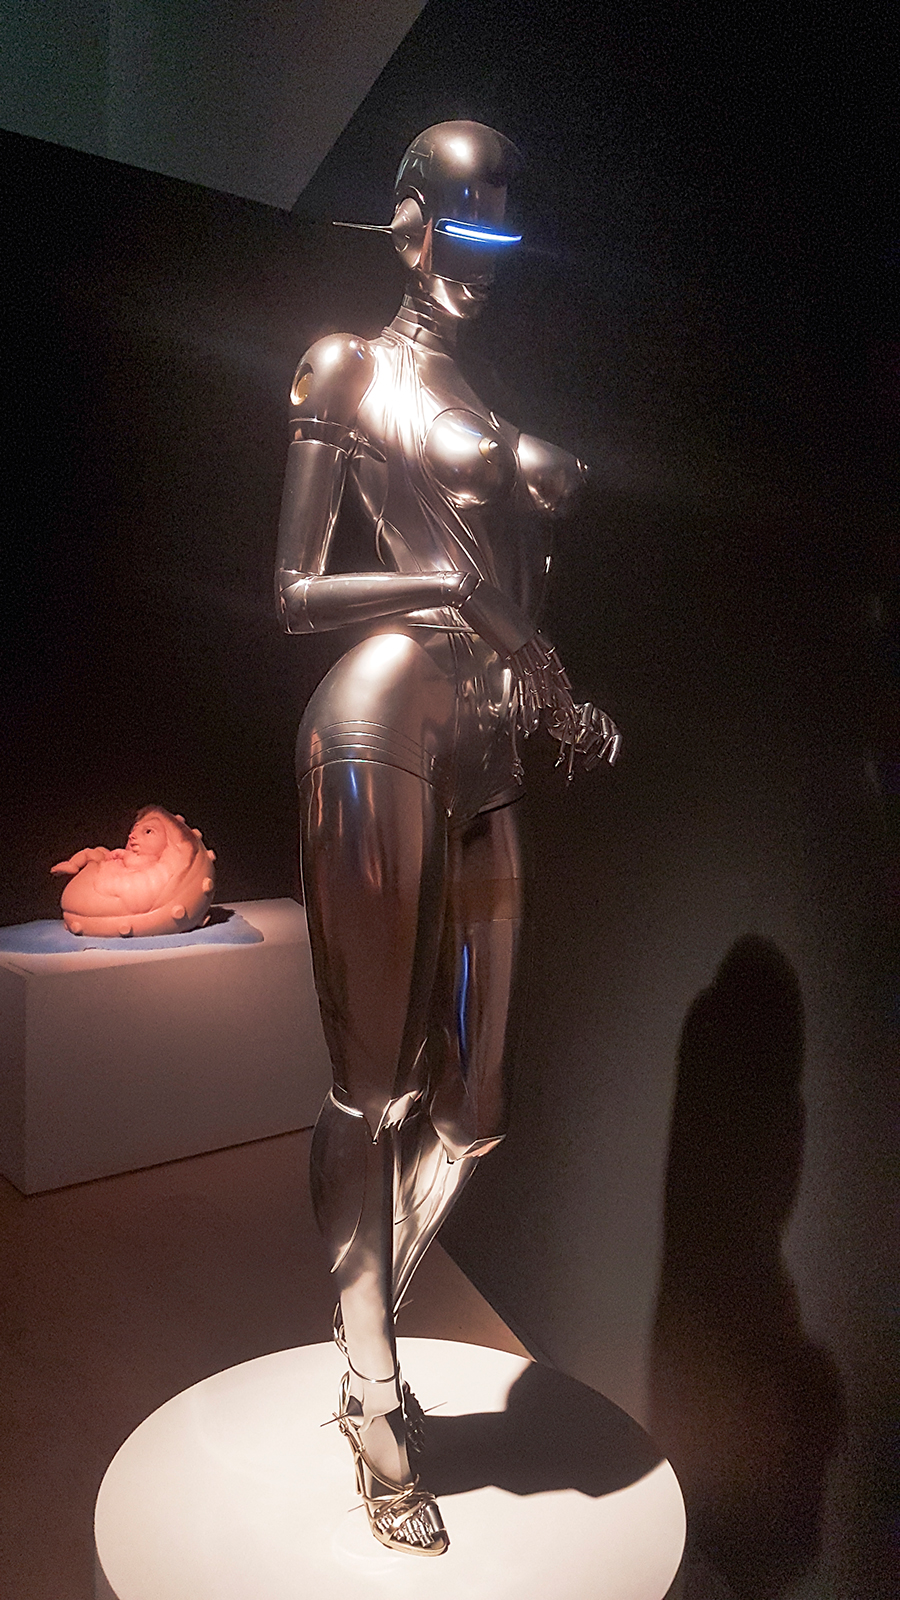 Sexy Robot by Hajime Sorayama at the The Universe and Art: An Artistic Voyage Through Space exhibition, ArtScience Museum Singapore.